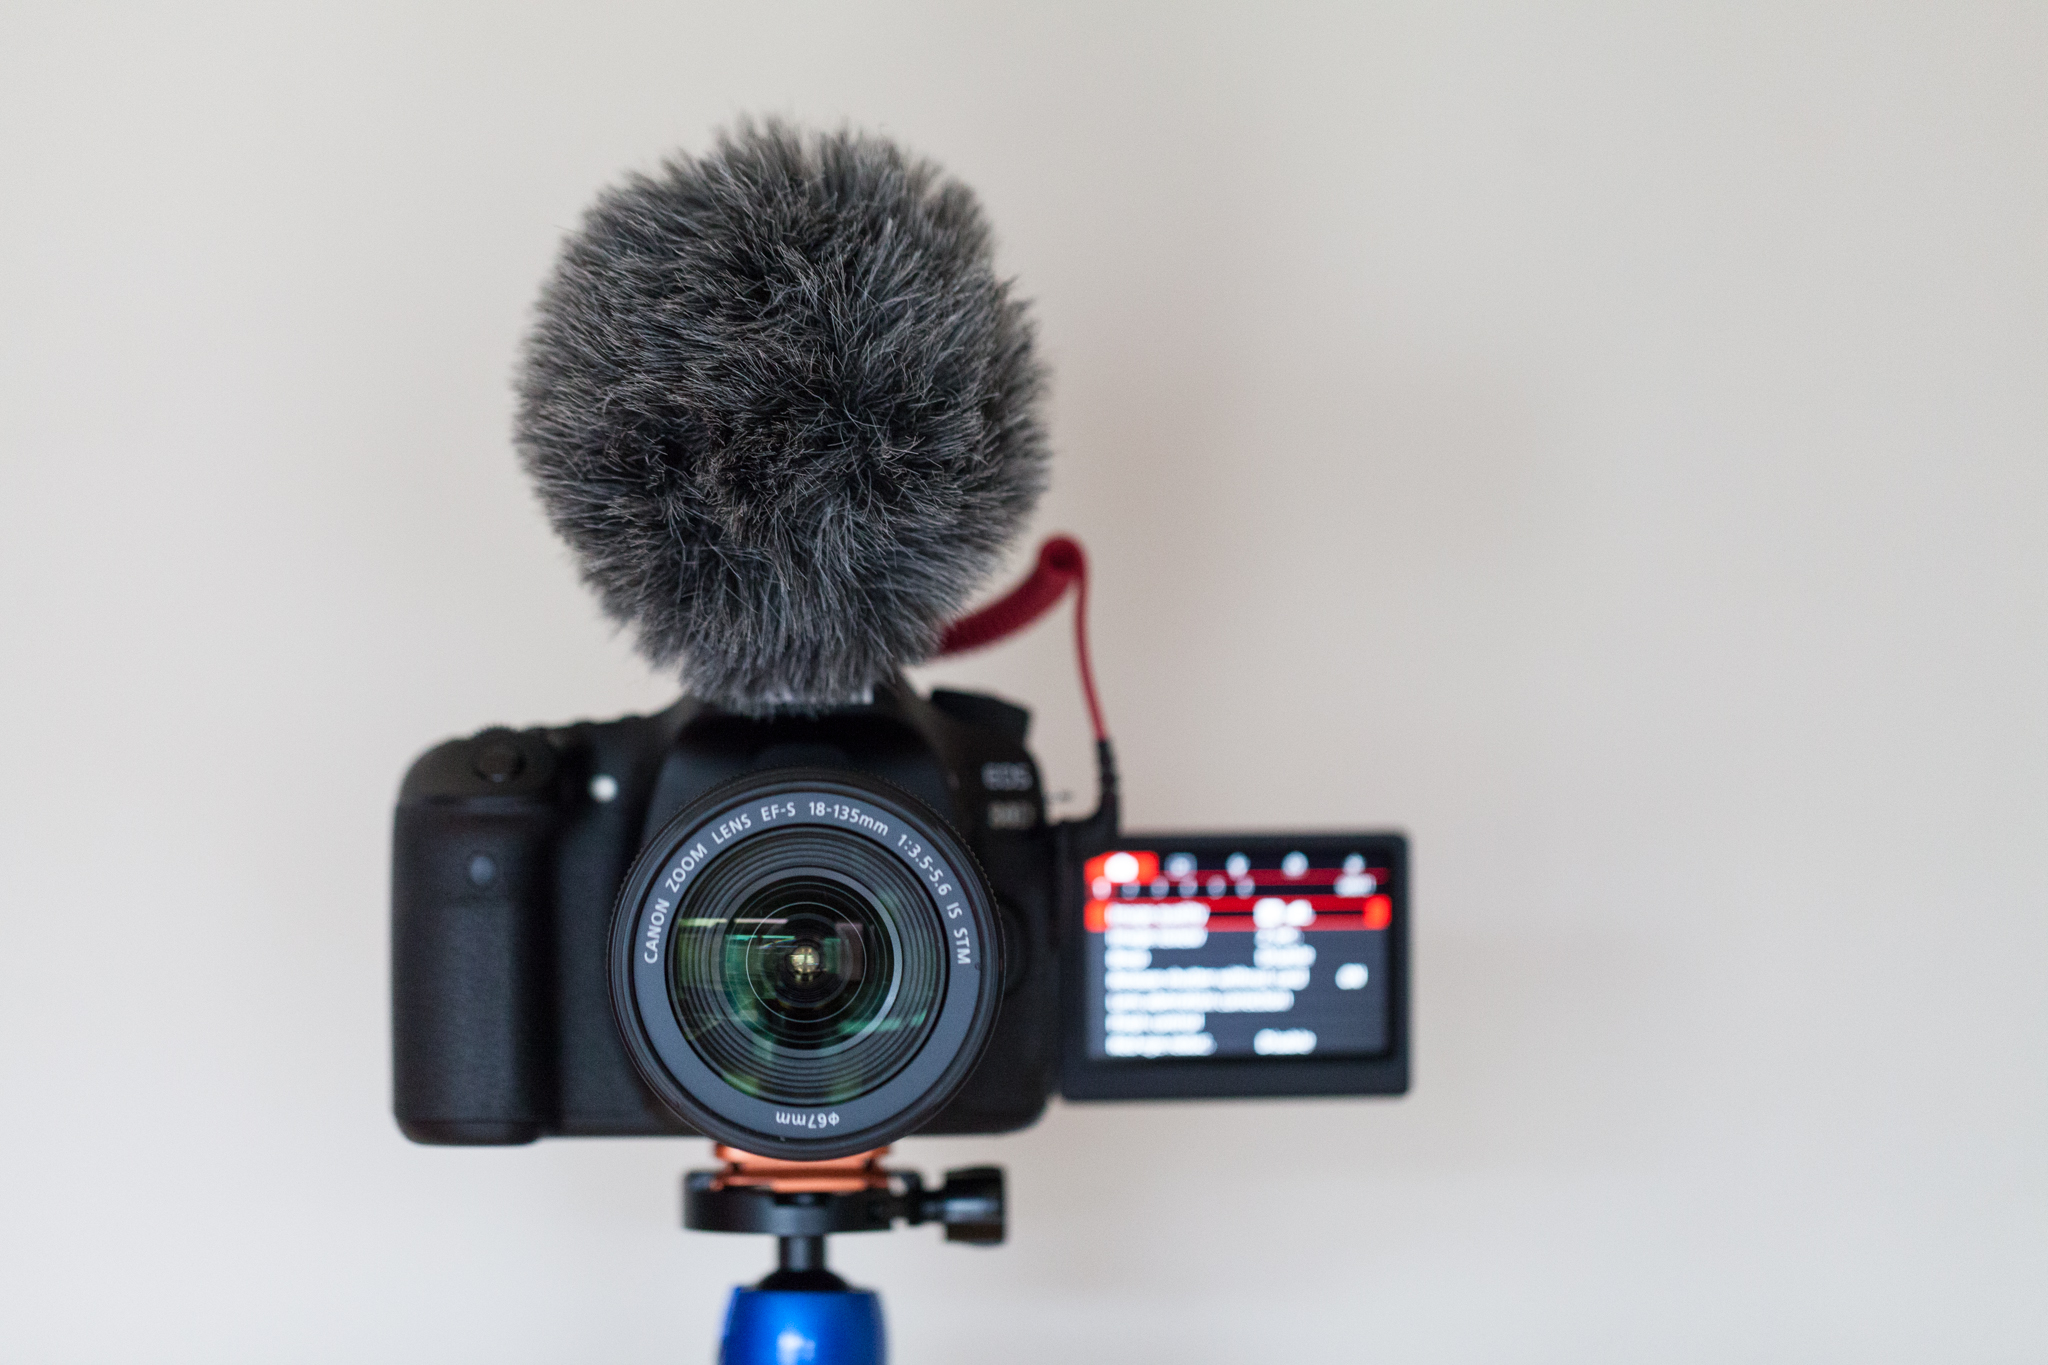 The autofocus and fully articulating screen makes this the perfect camera for making video